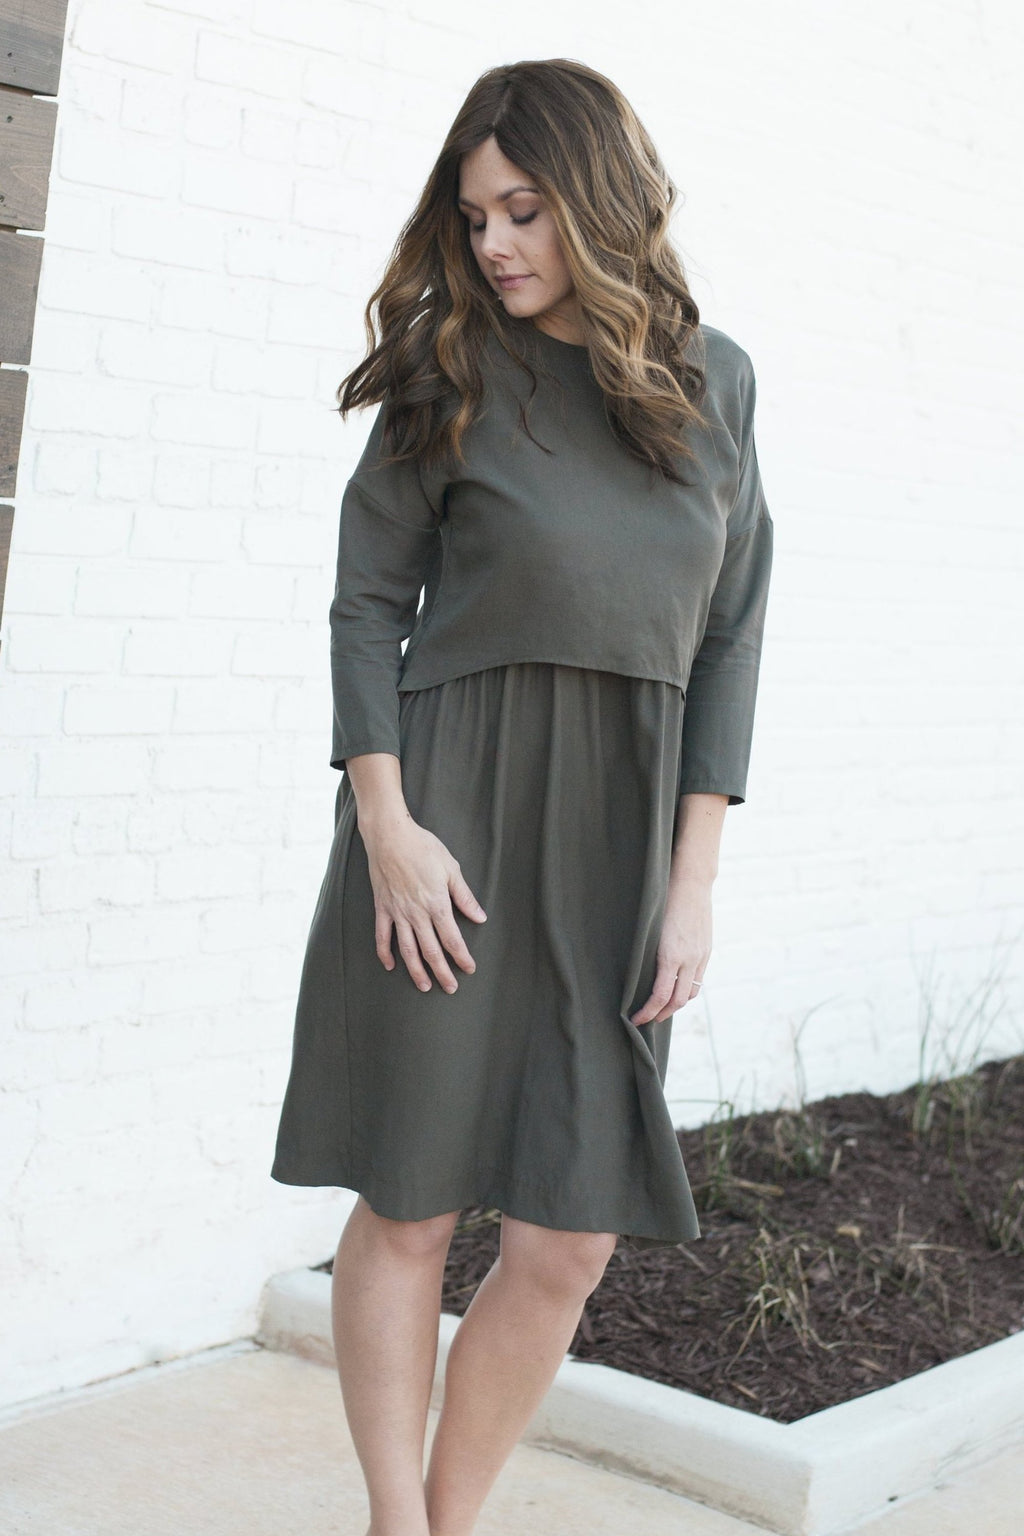 Havah Blaze- Nursing Friendly -Eco-Friendly - in Olive Tencel